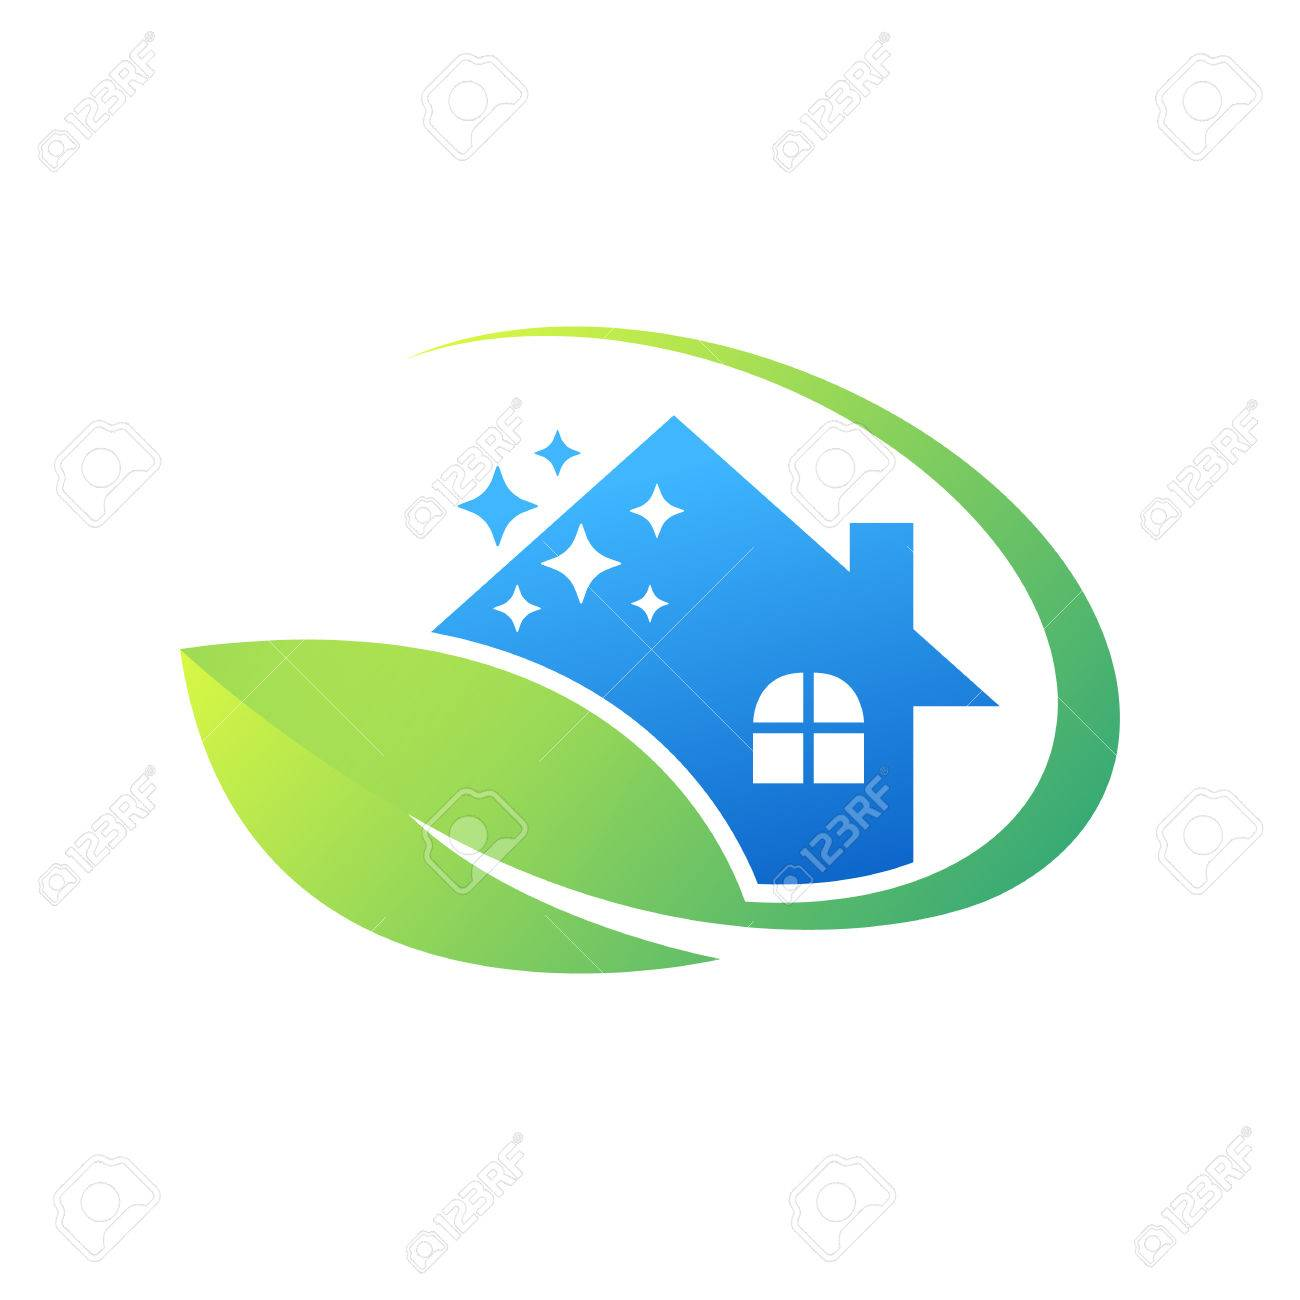 Cleaning Service Logo Design Idea. Creative Eco Symbol Template. Building  And House Stock Vector